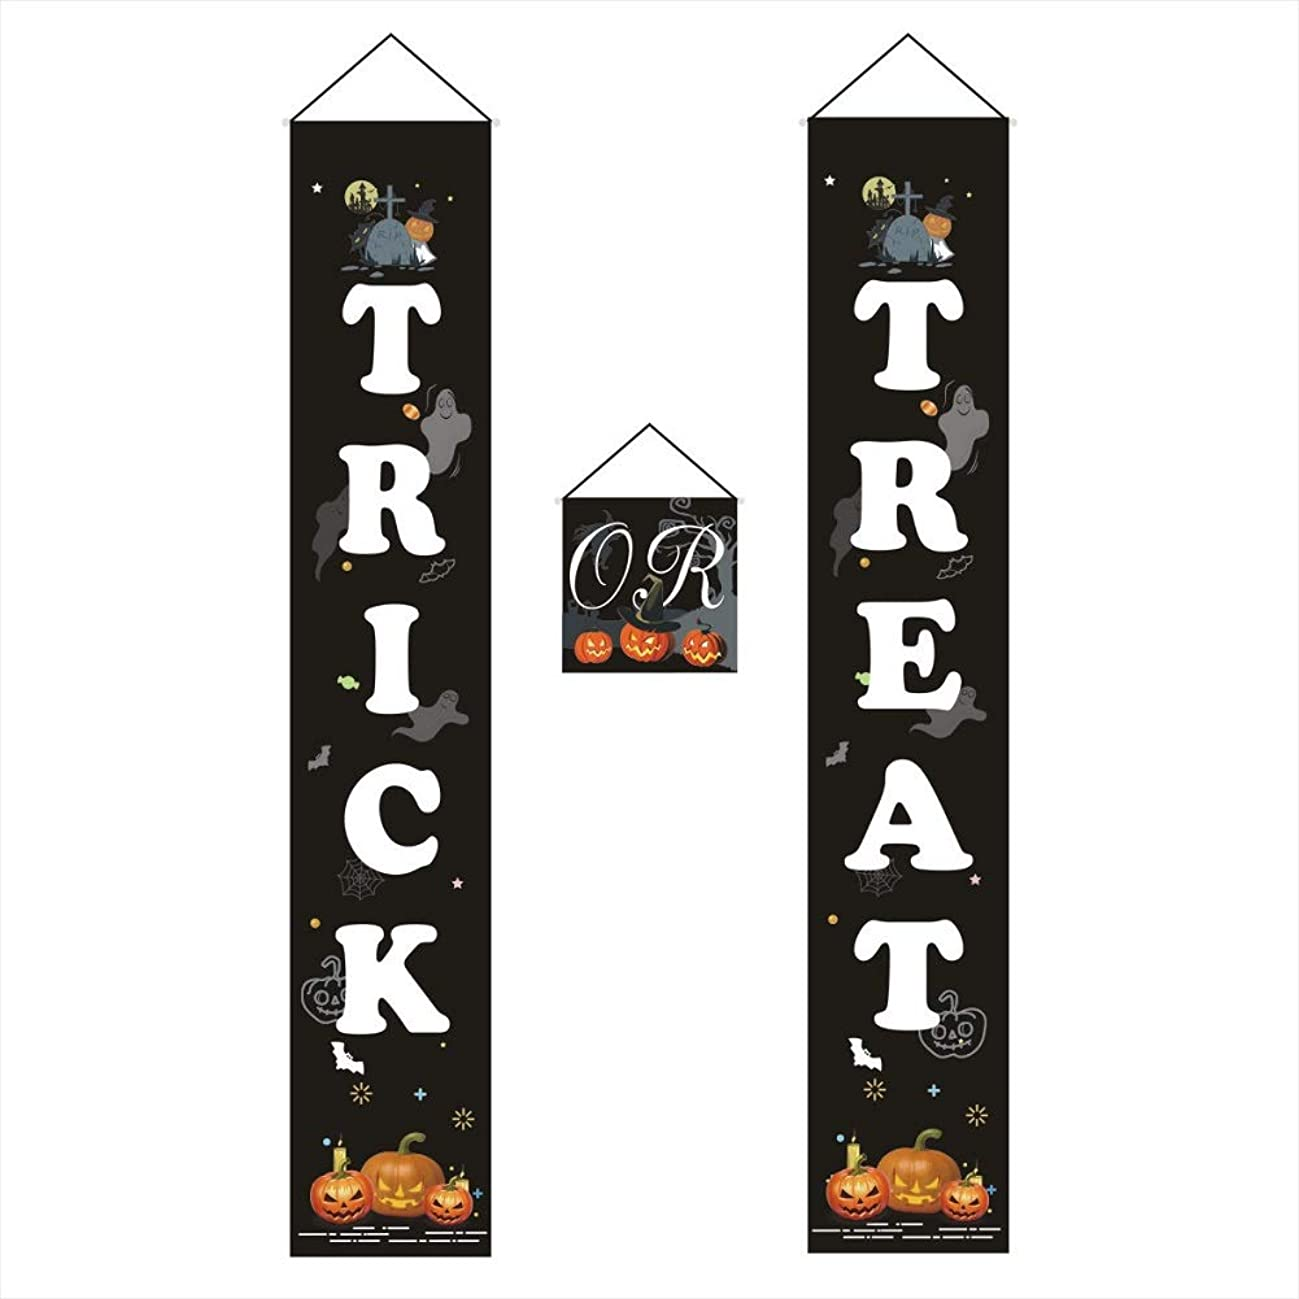 CheeseandU 3 Set Trick or Treat Halloween Banner Garland Home Door Sign Halloween Party Hangers Decoration for Home Fireplace Office Outdoor Halloween Decor Ready to Welcome Kids